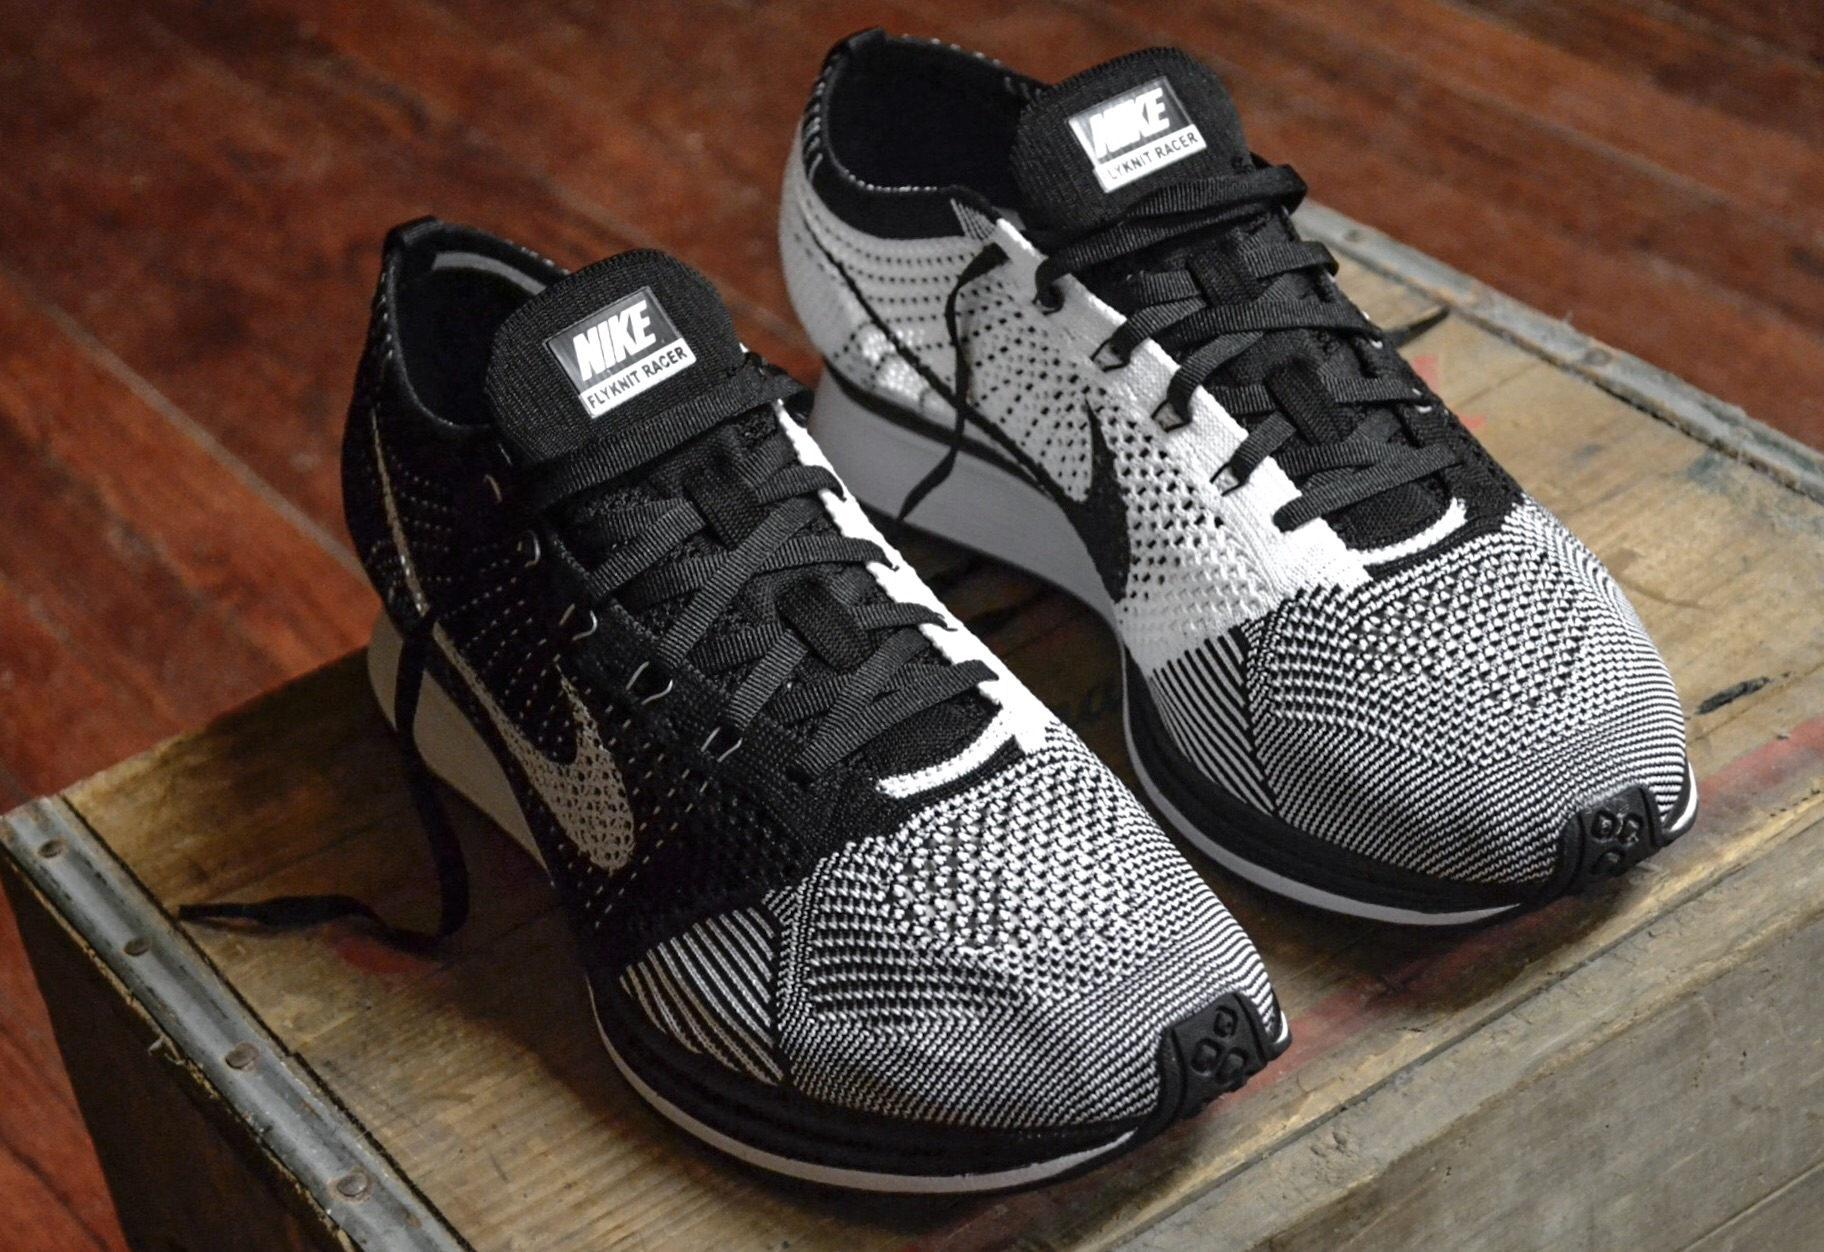 An almost identical version of the Flyknit Racer released last year, this year Nike brings the same Flyknit Racer back, this time around they feature a Black tongue.